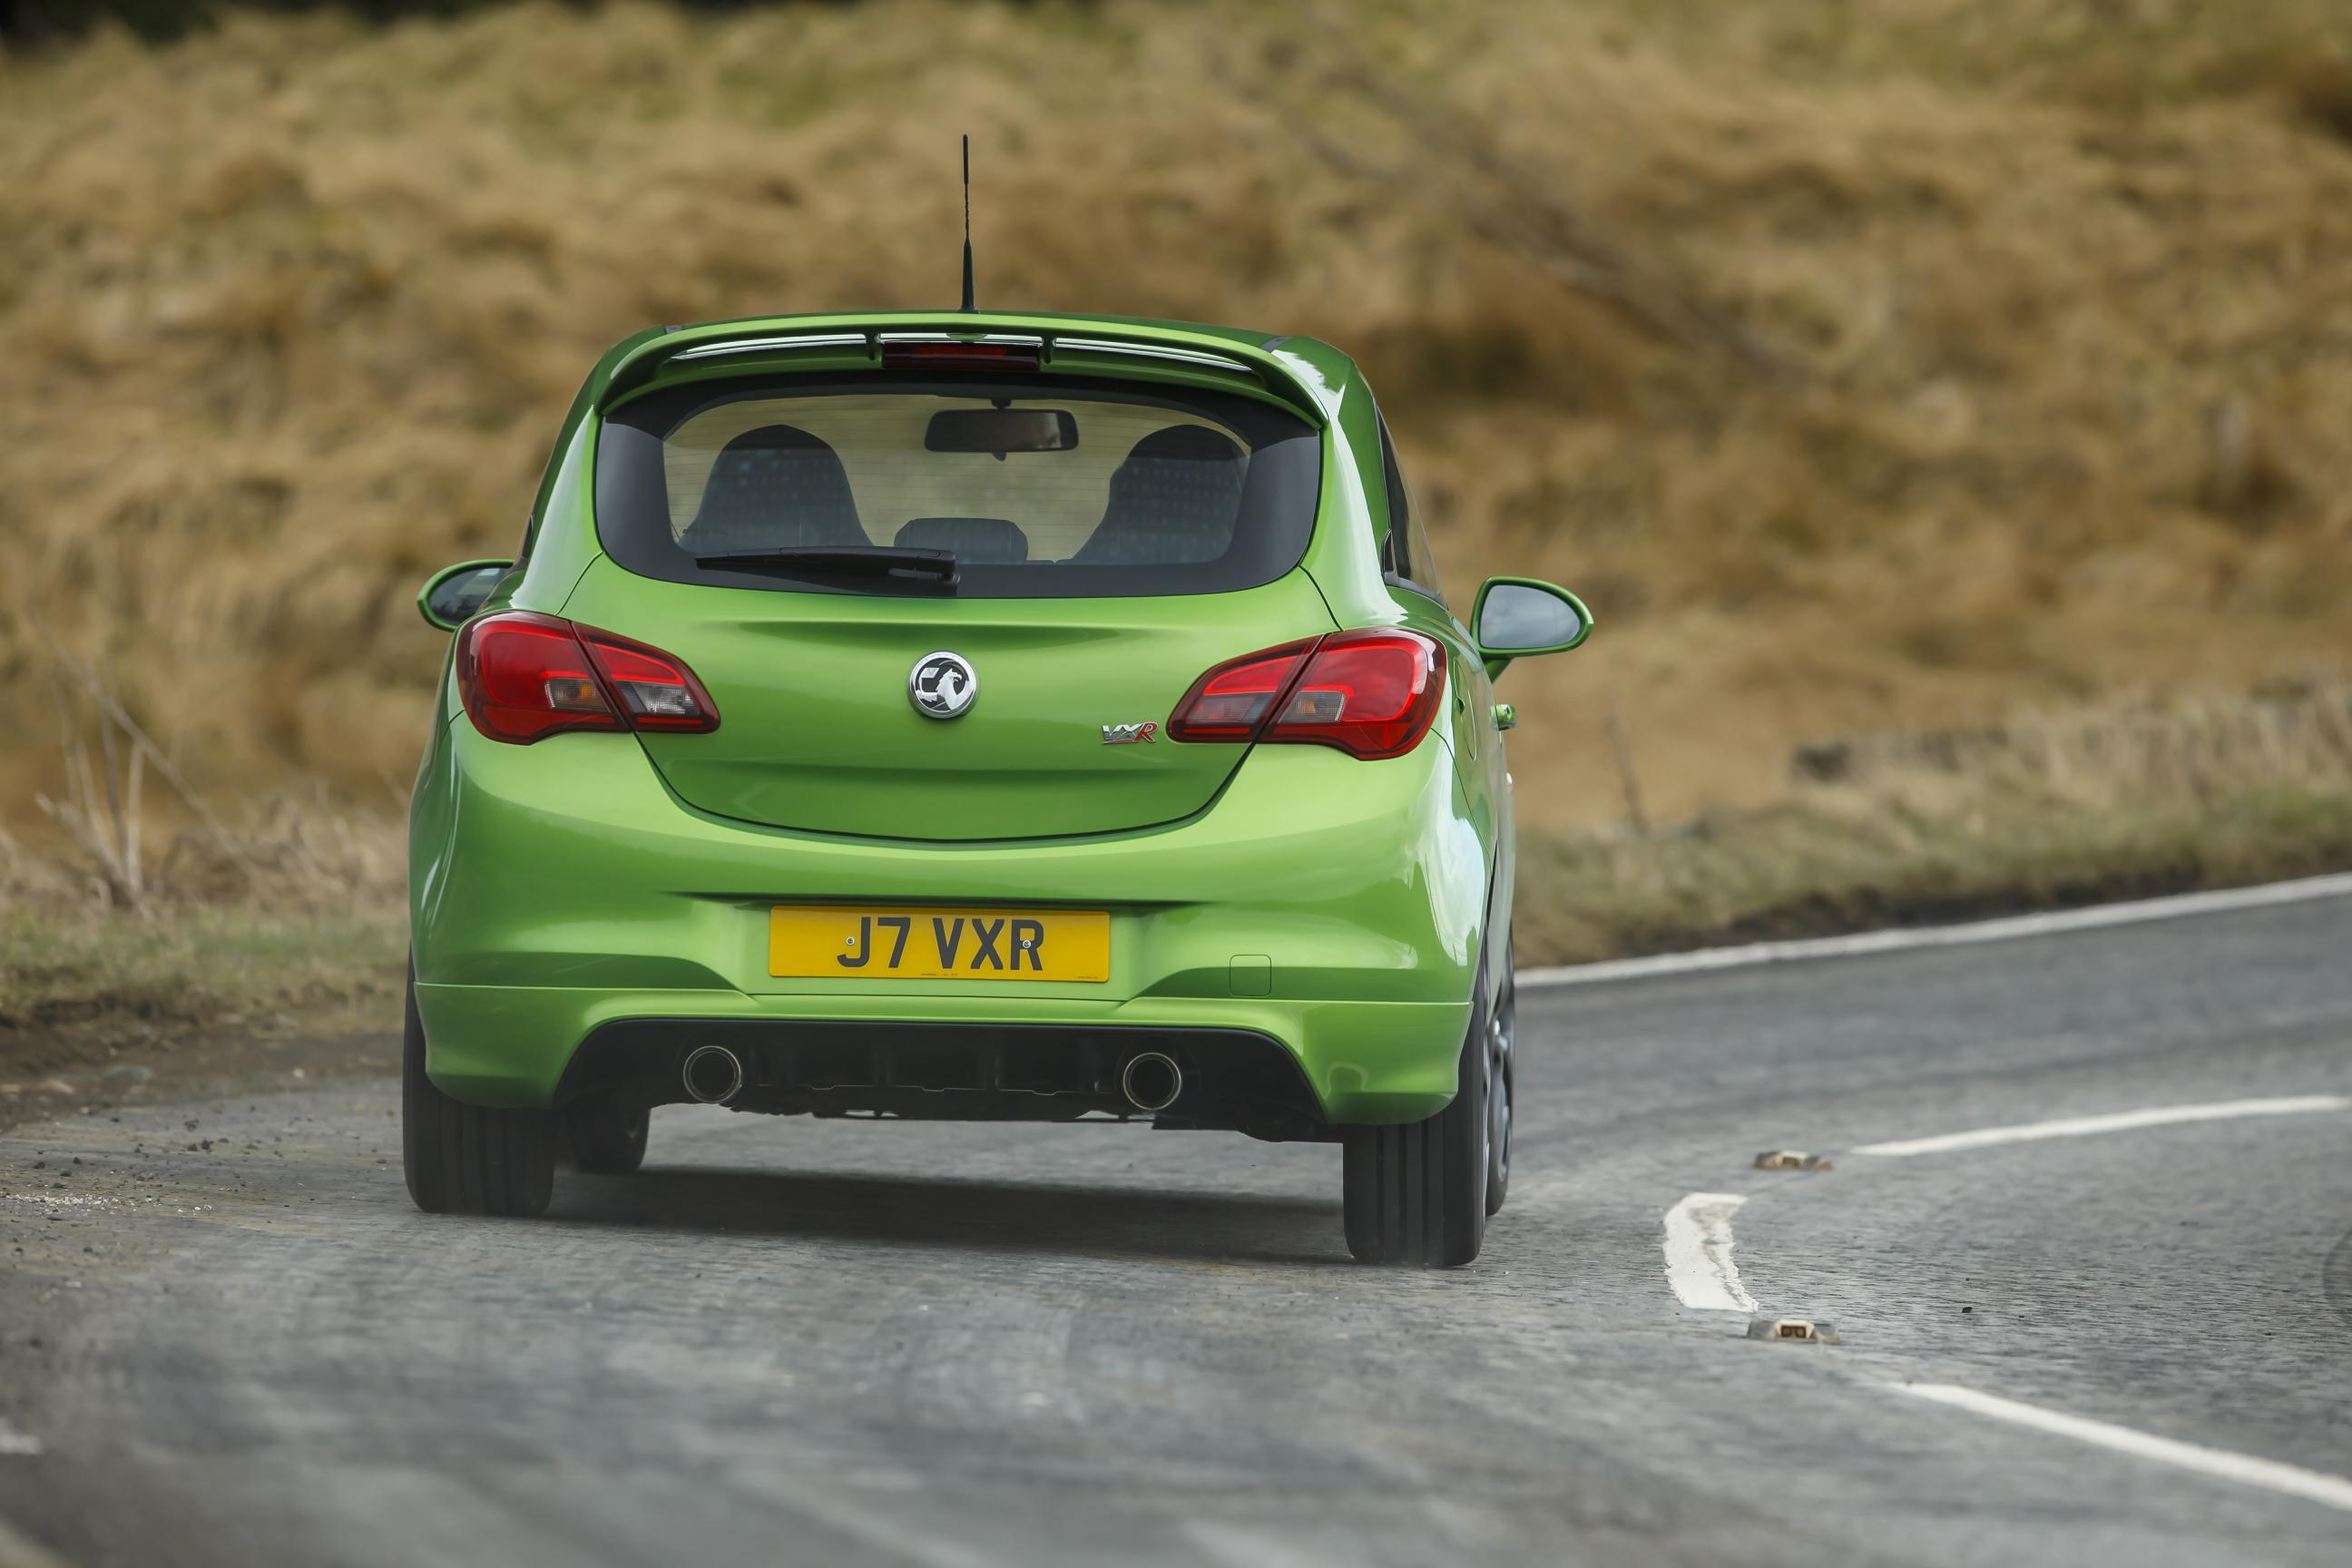 Vauxhall Corsa rear view